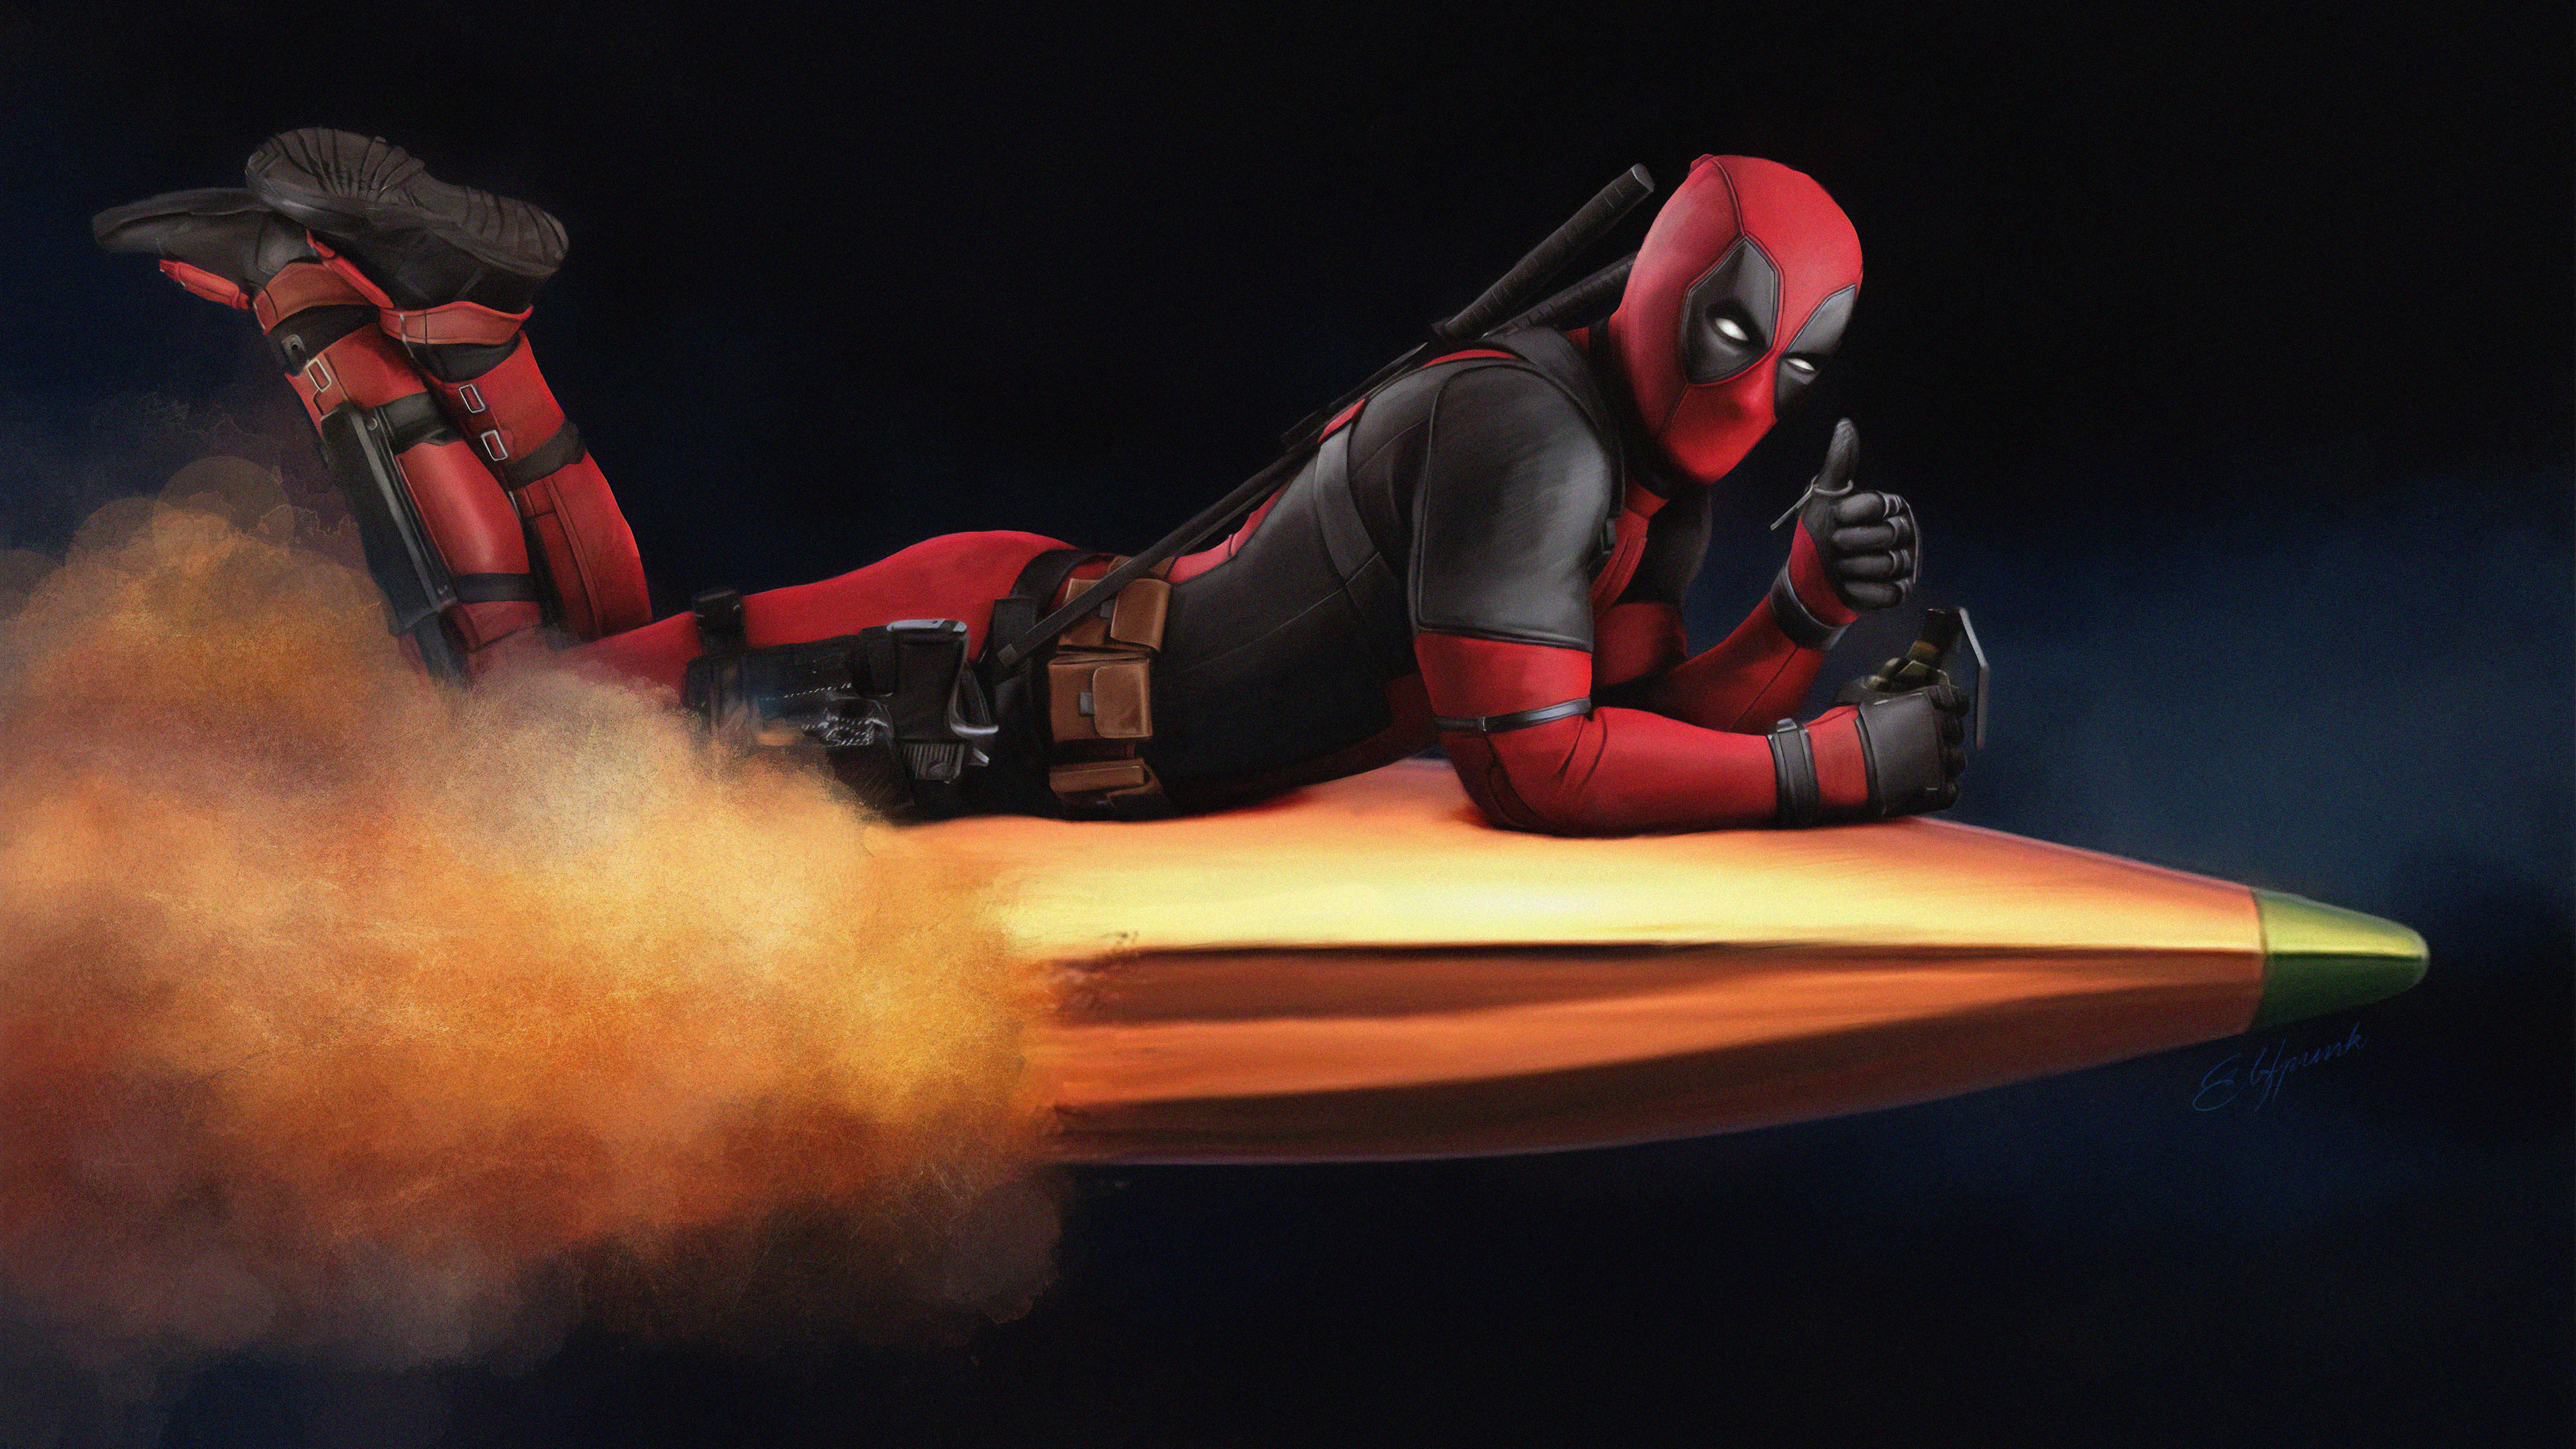 riding on bullet 1563219805 - Riding On Bullet - superheroes wallpapers, hd-wallpapers, digital art wallpapers, deadpool wallpapers, artwork wallpapers, 4k-wallpapers